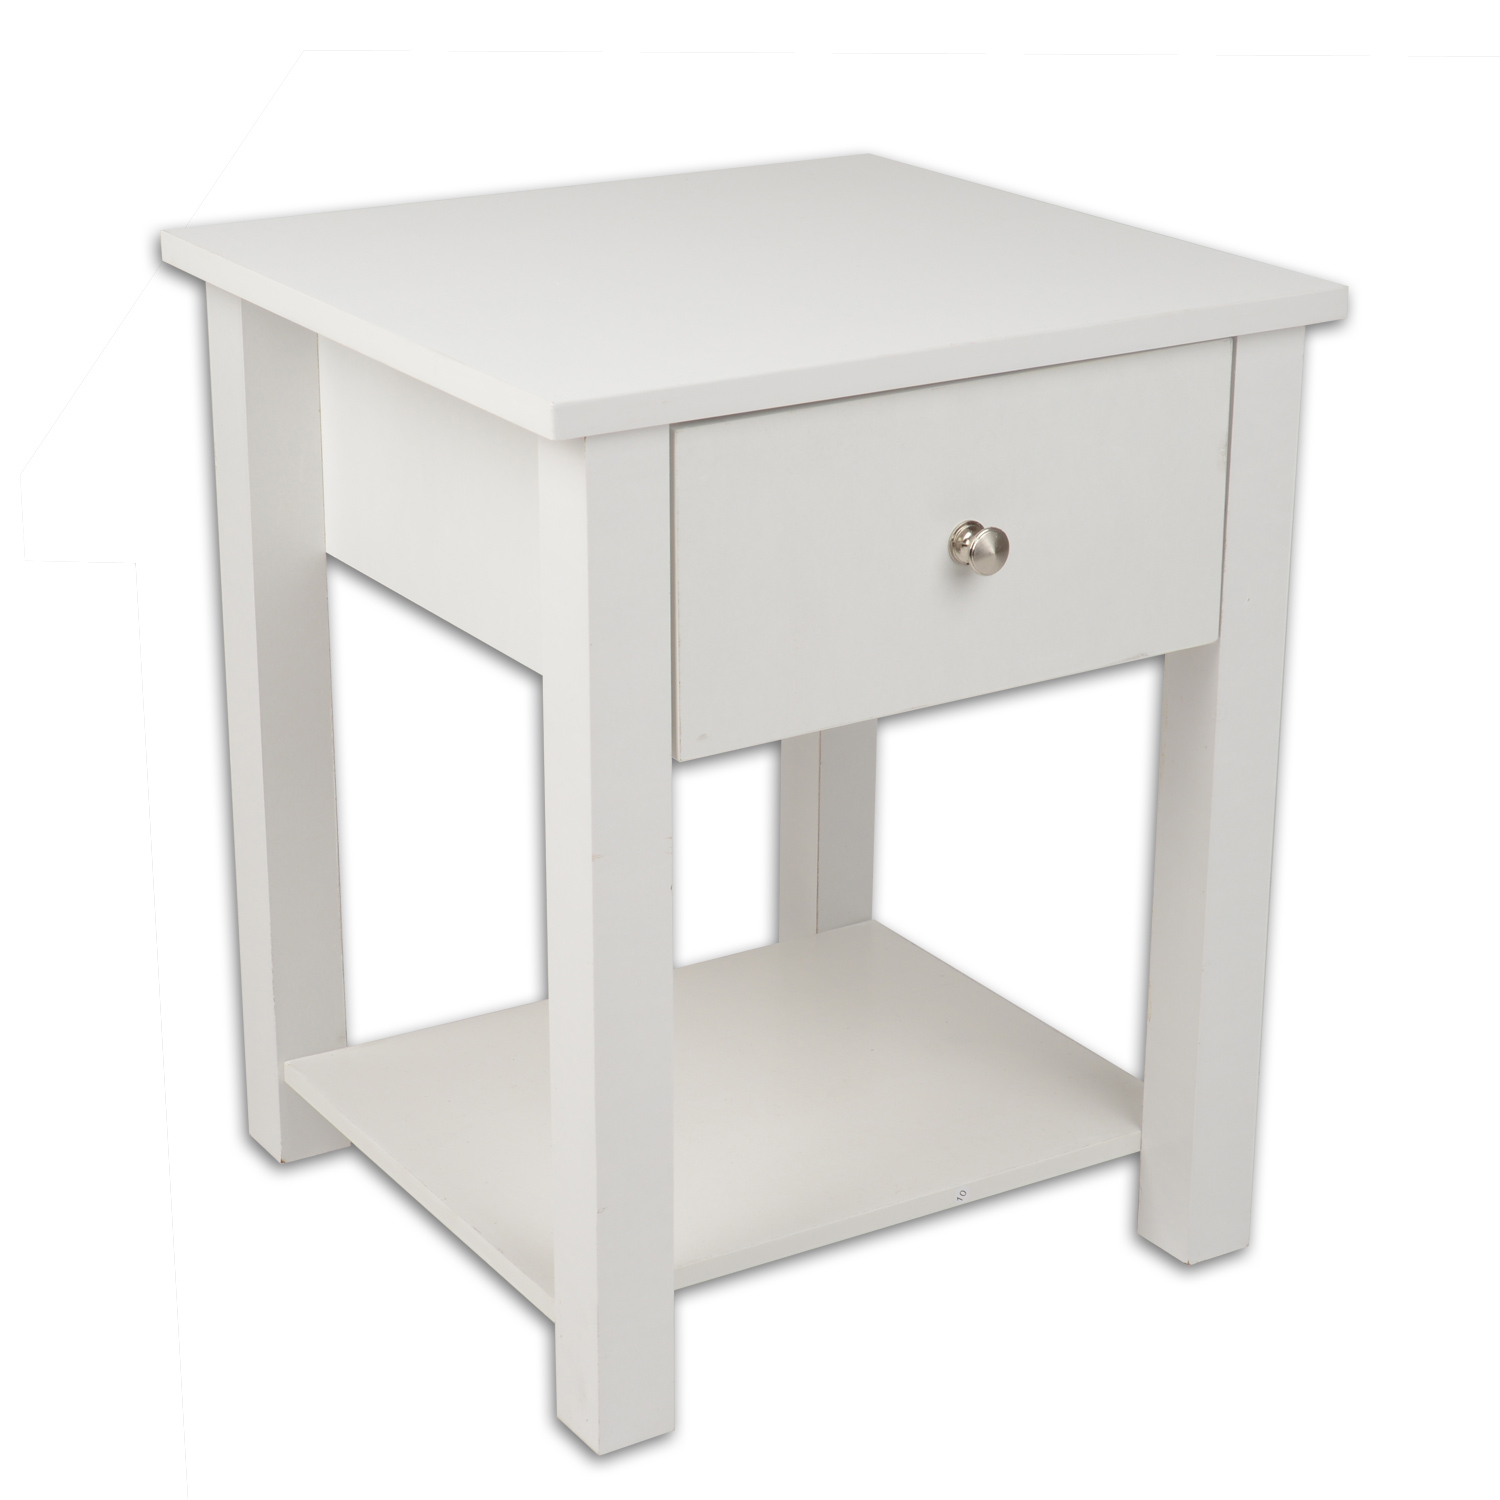 Image of Christow Wooden 1 Drawer Nightstand (White)